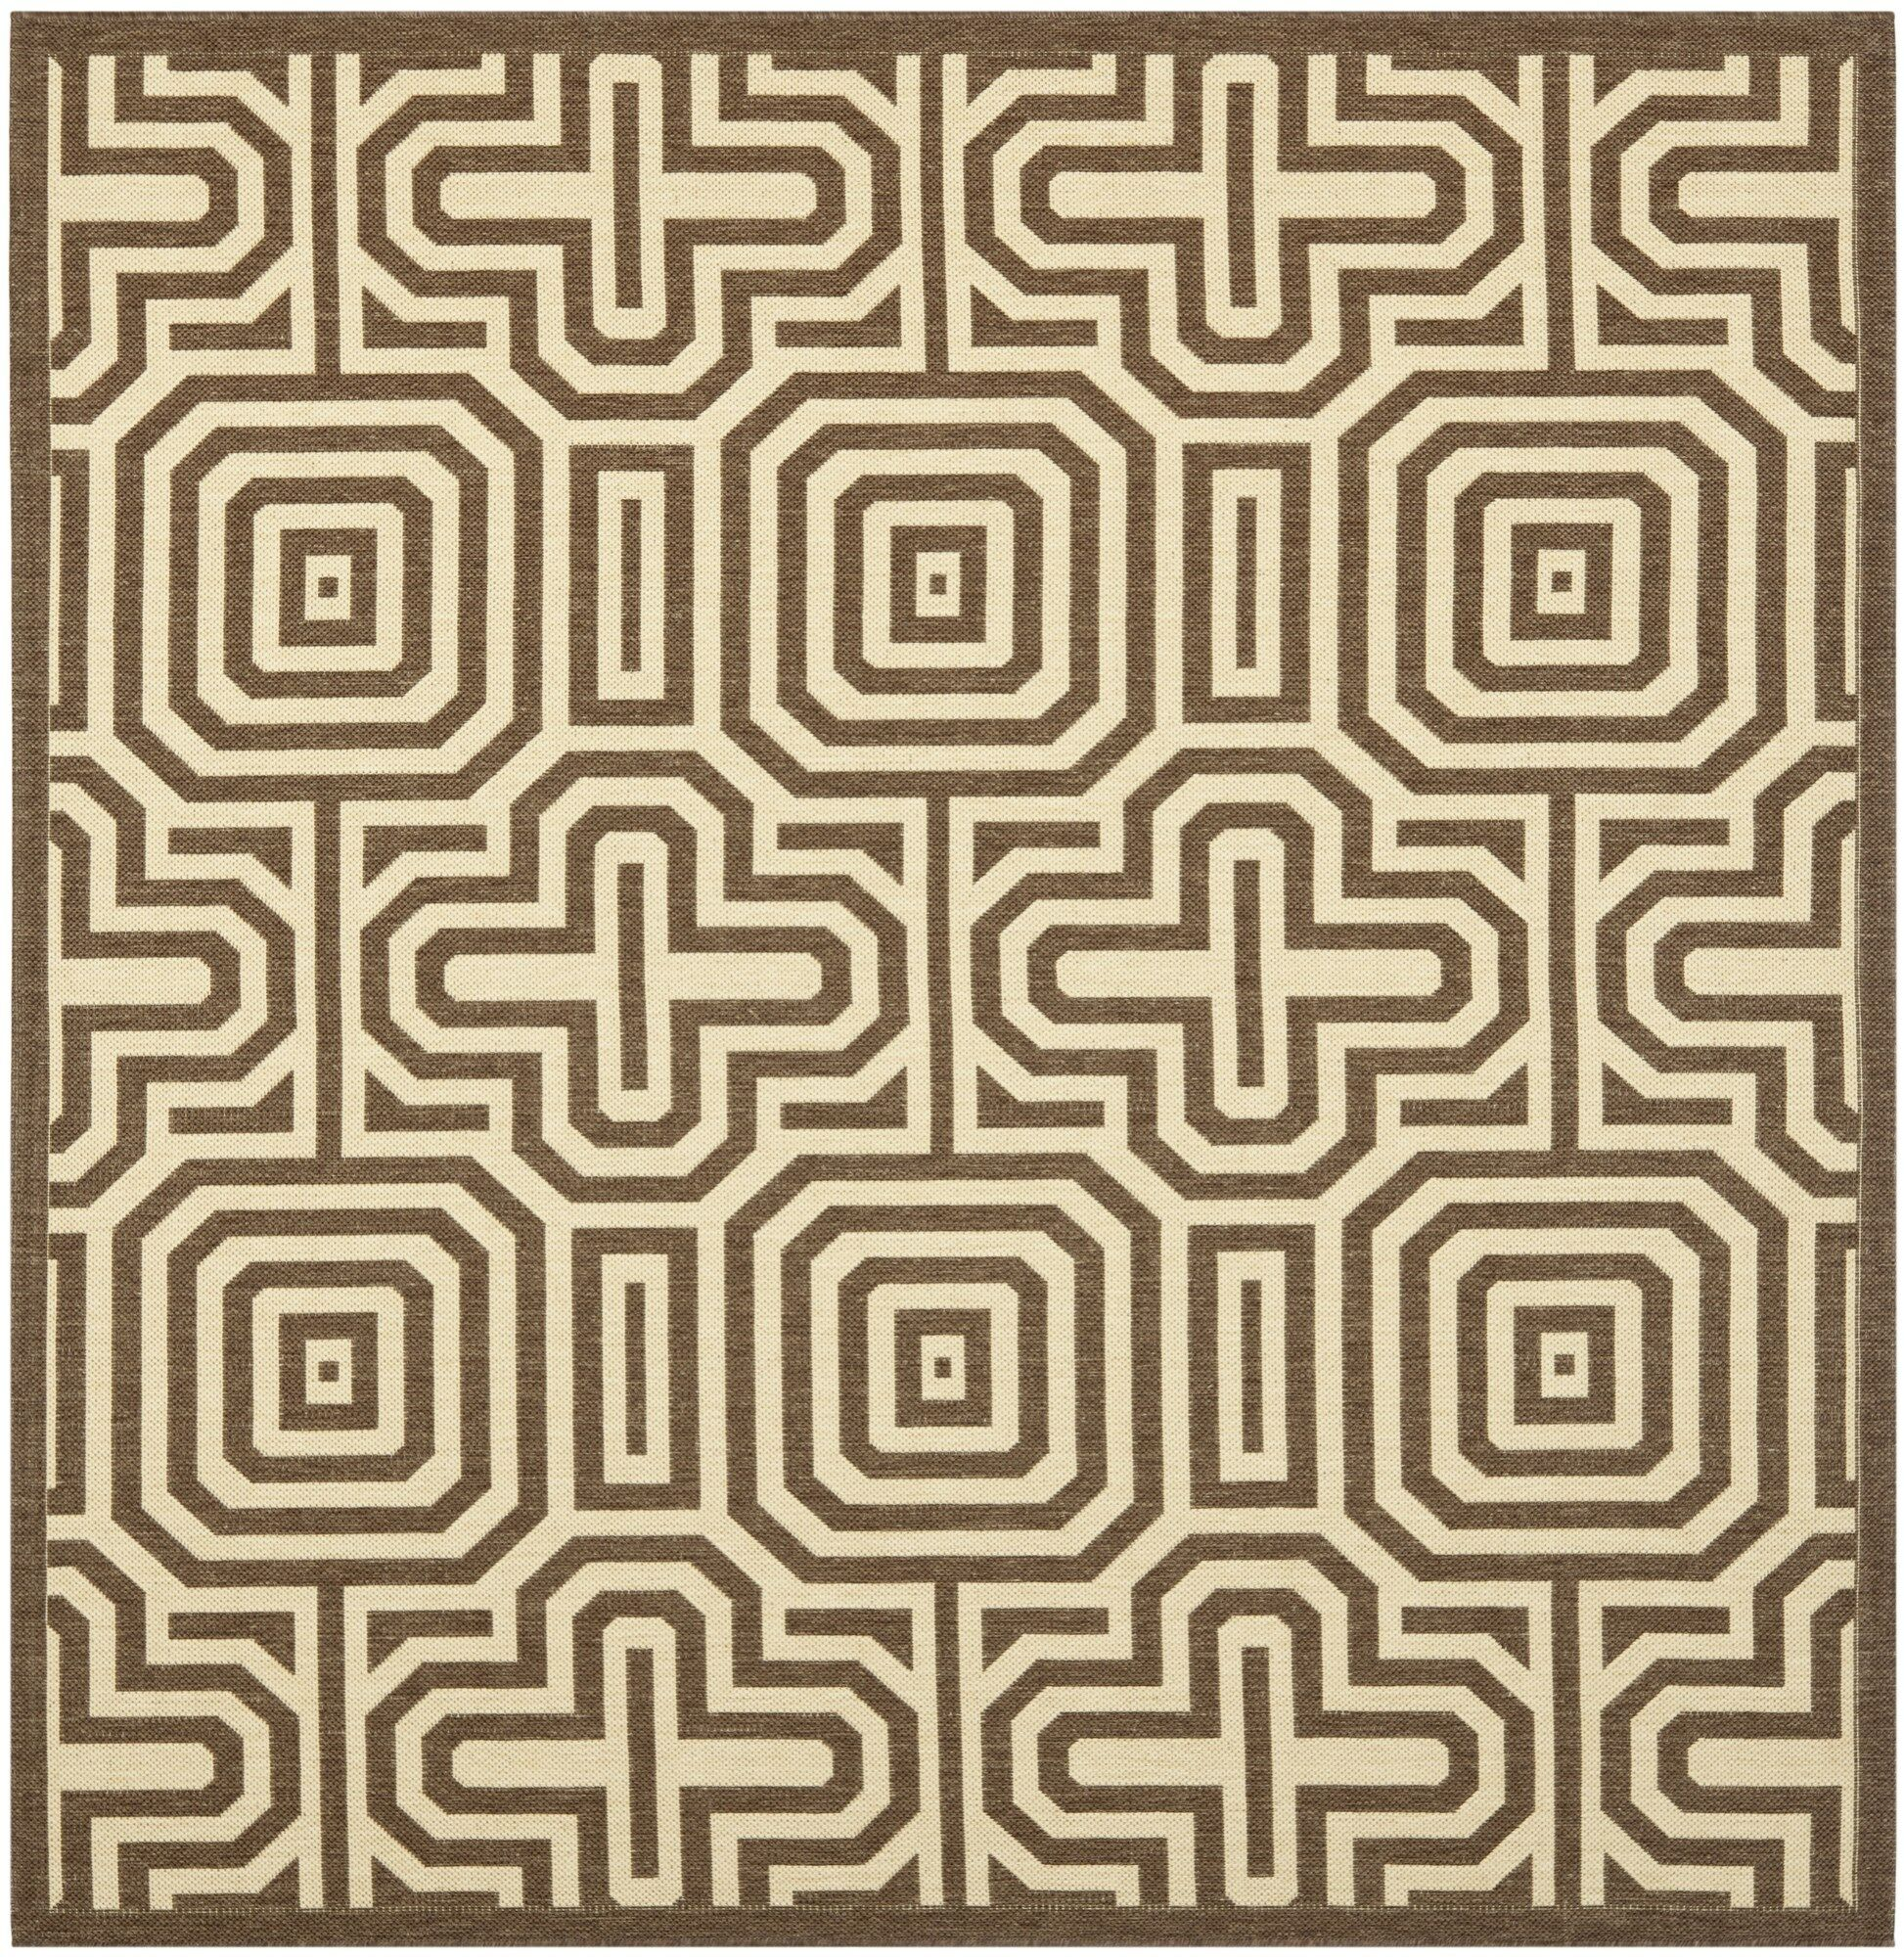 Jefferson Place Natural/Brown Indoor/Outdoor Area Rug Rug Size: Square 6'7